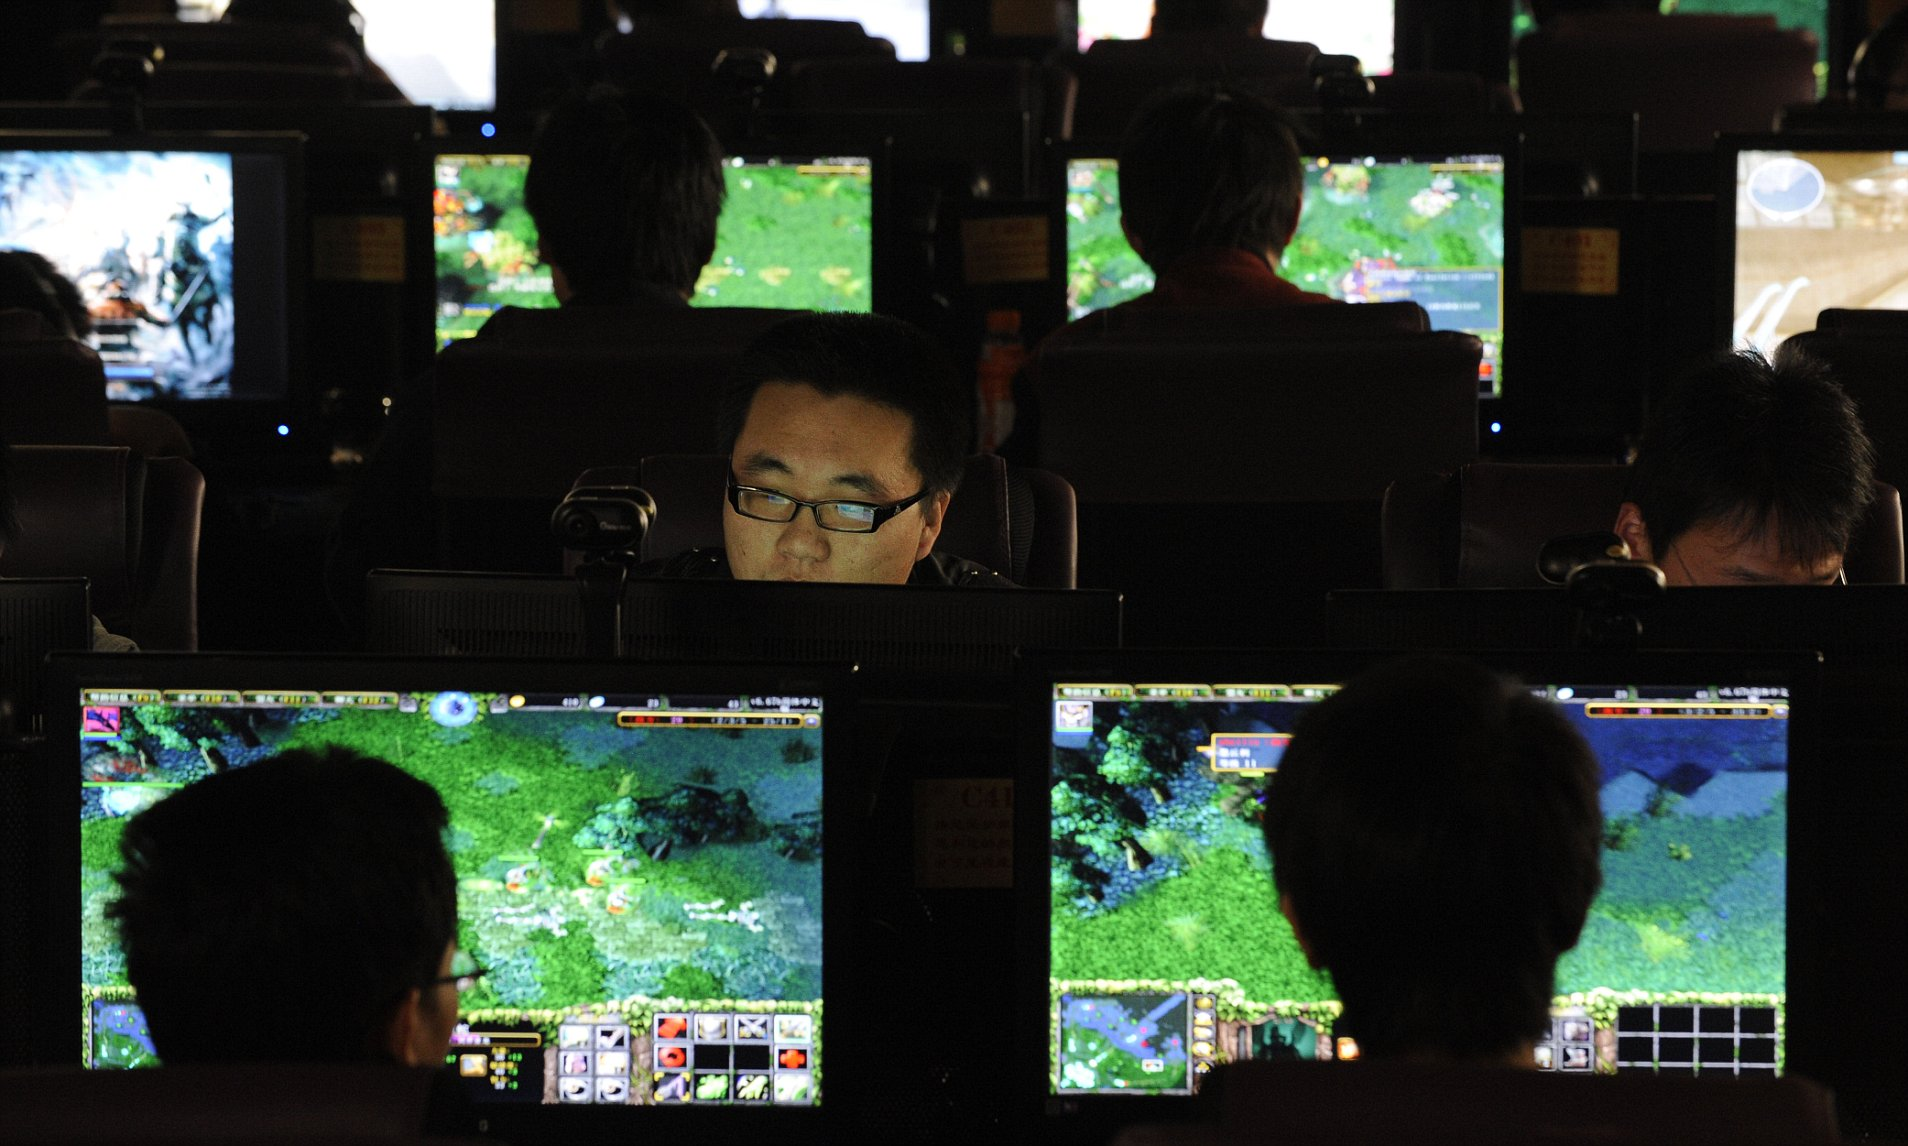 Now The Eye Of Sauron Turns To On-Line Gaming In Tech